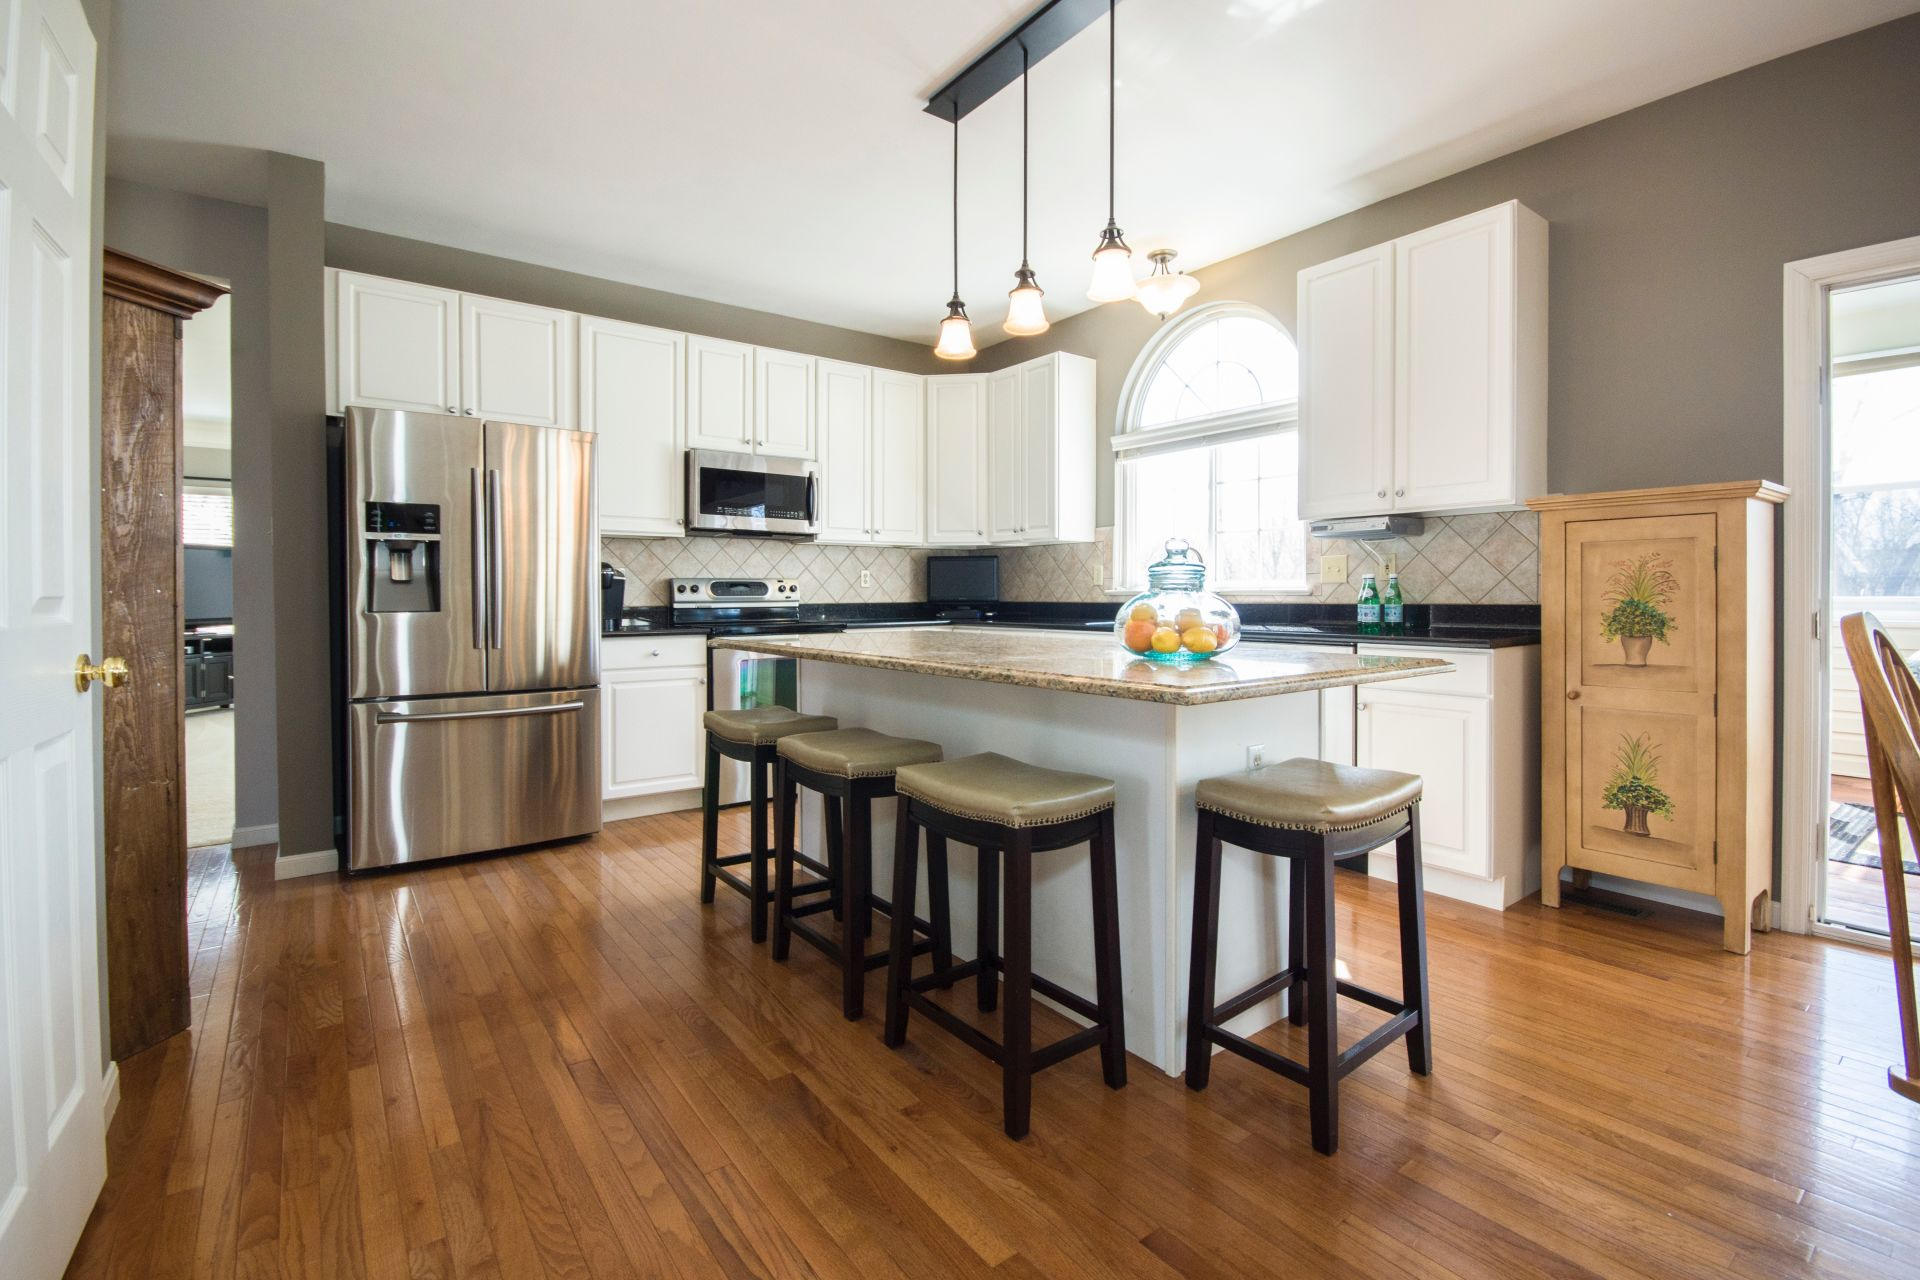 Meadow Run Homes for Sale in Parkland